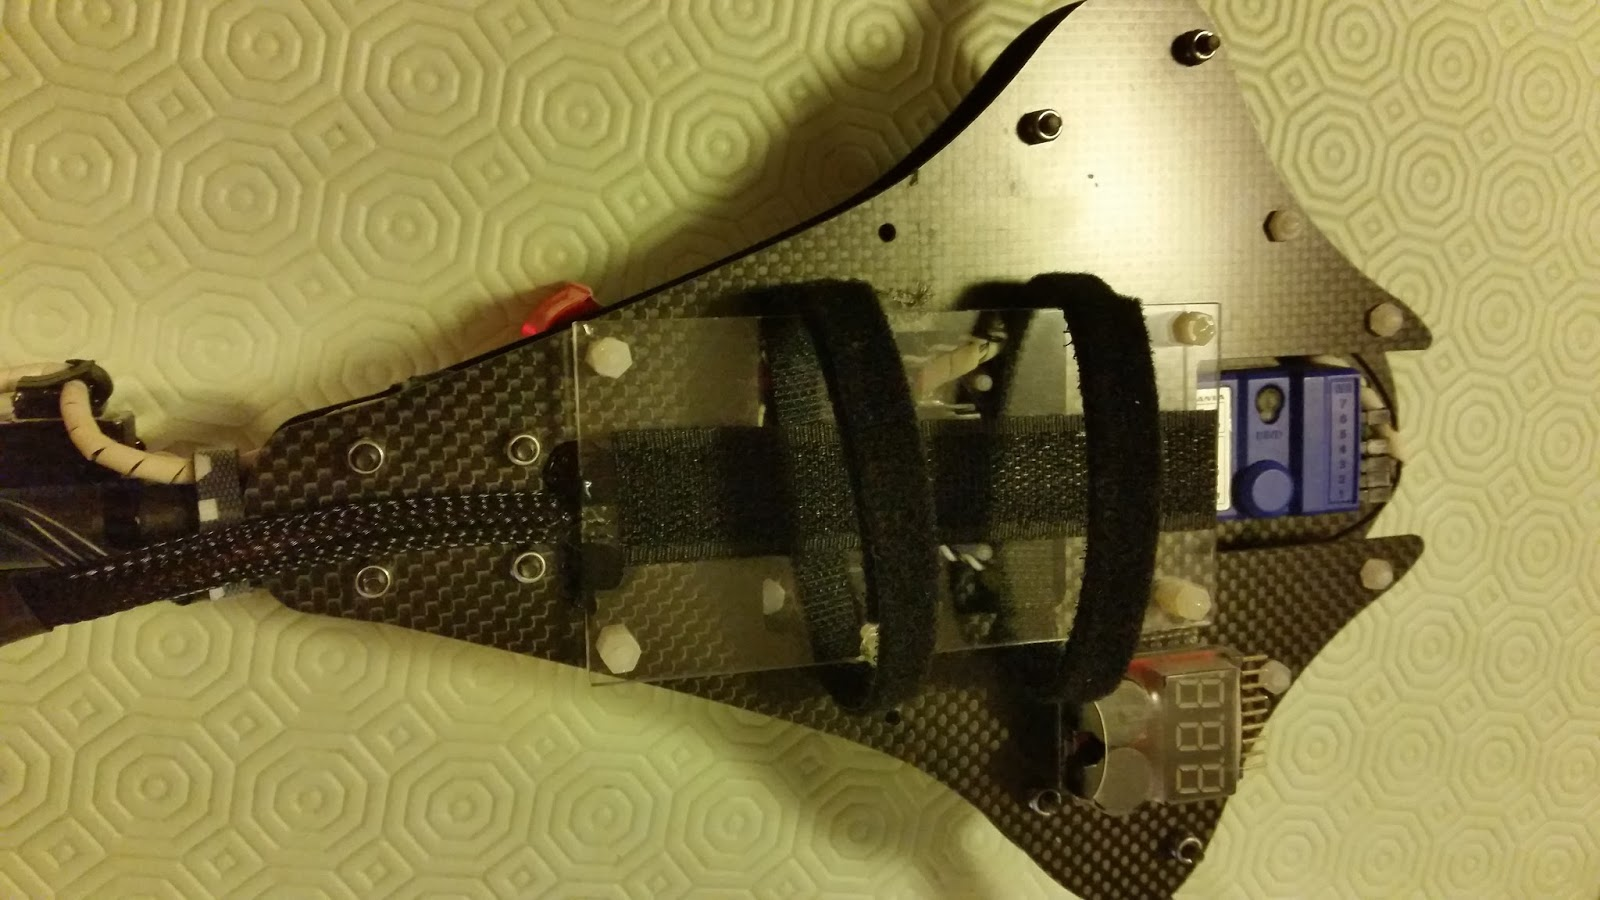 Tracer Fpv Tricopter Racer Project January 2016 Openpilot Cc3d Wiring Diagram The Round Tube Is In Place To Avoid Object Etc Enter Body Of It Allows See Leds And Have Separate Screws For Protection